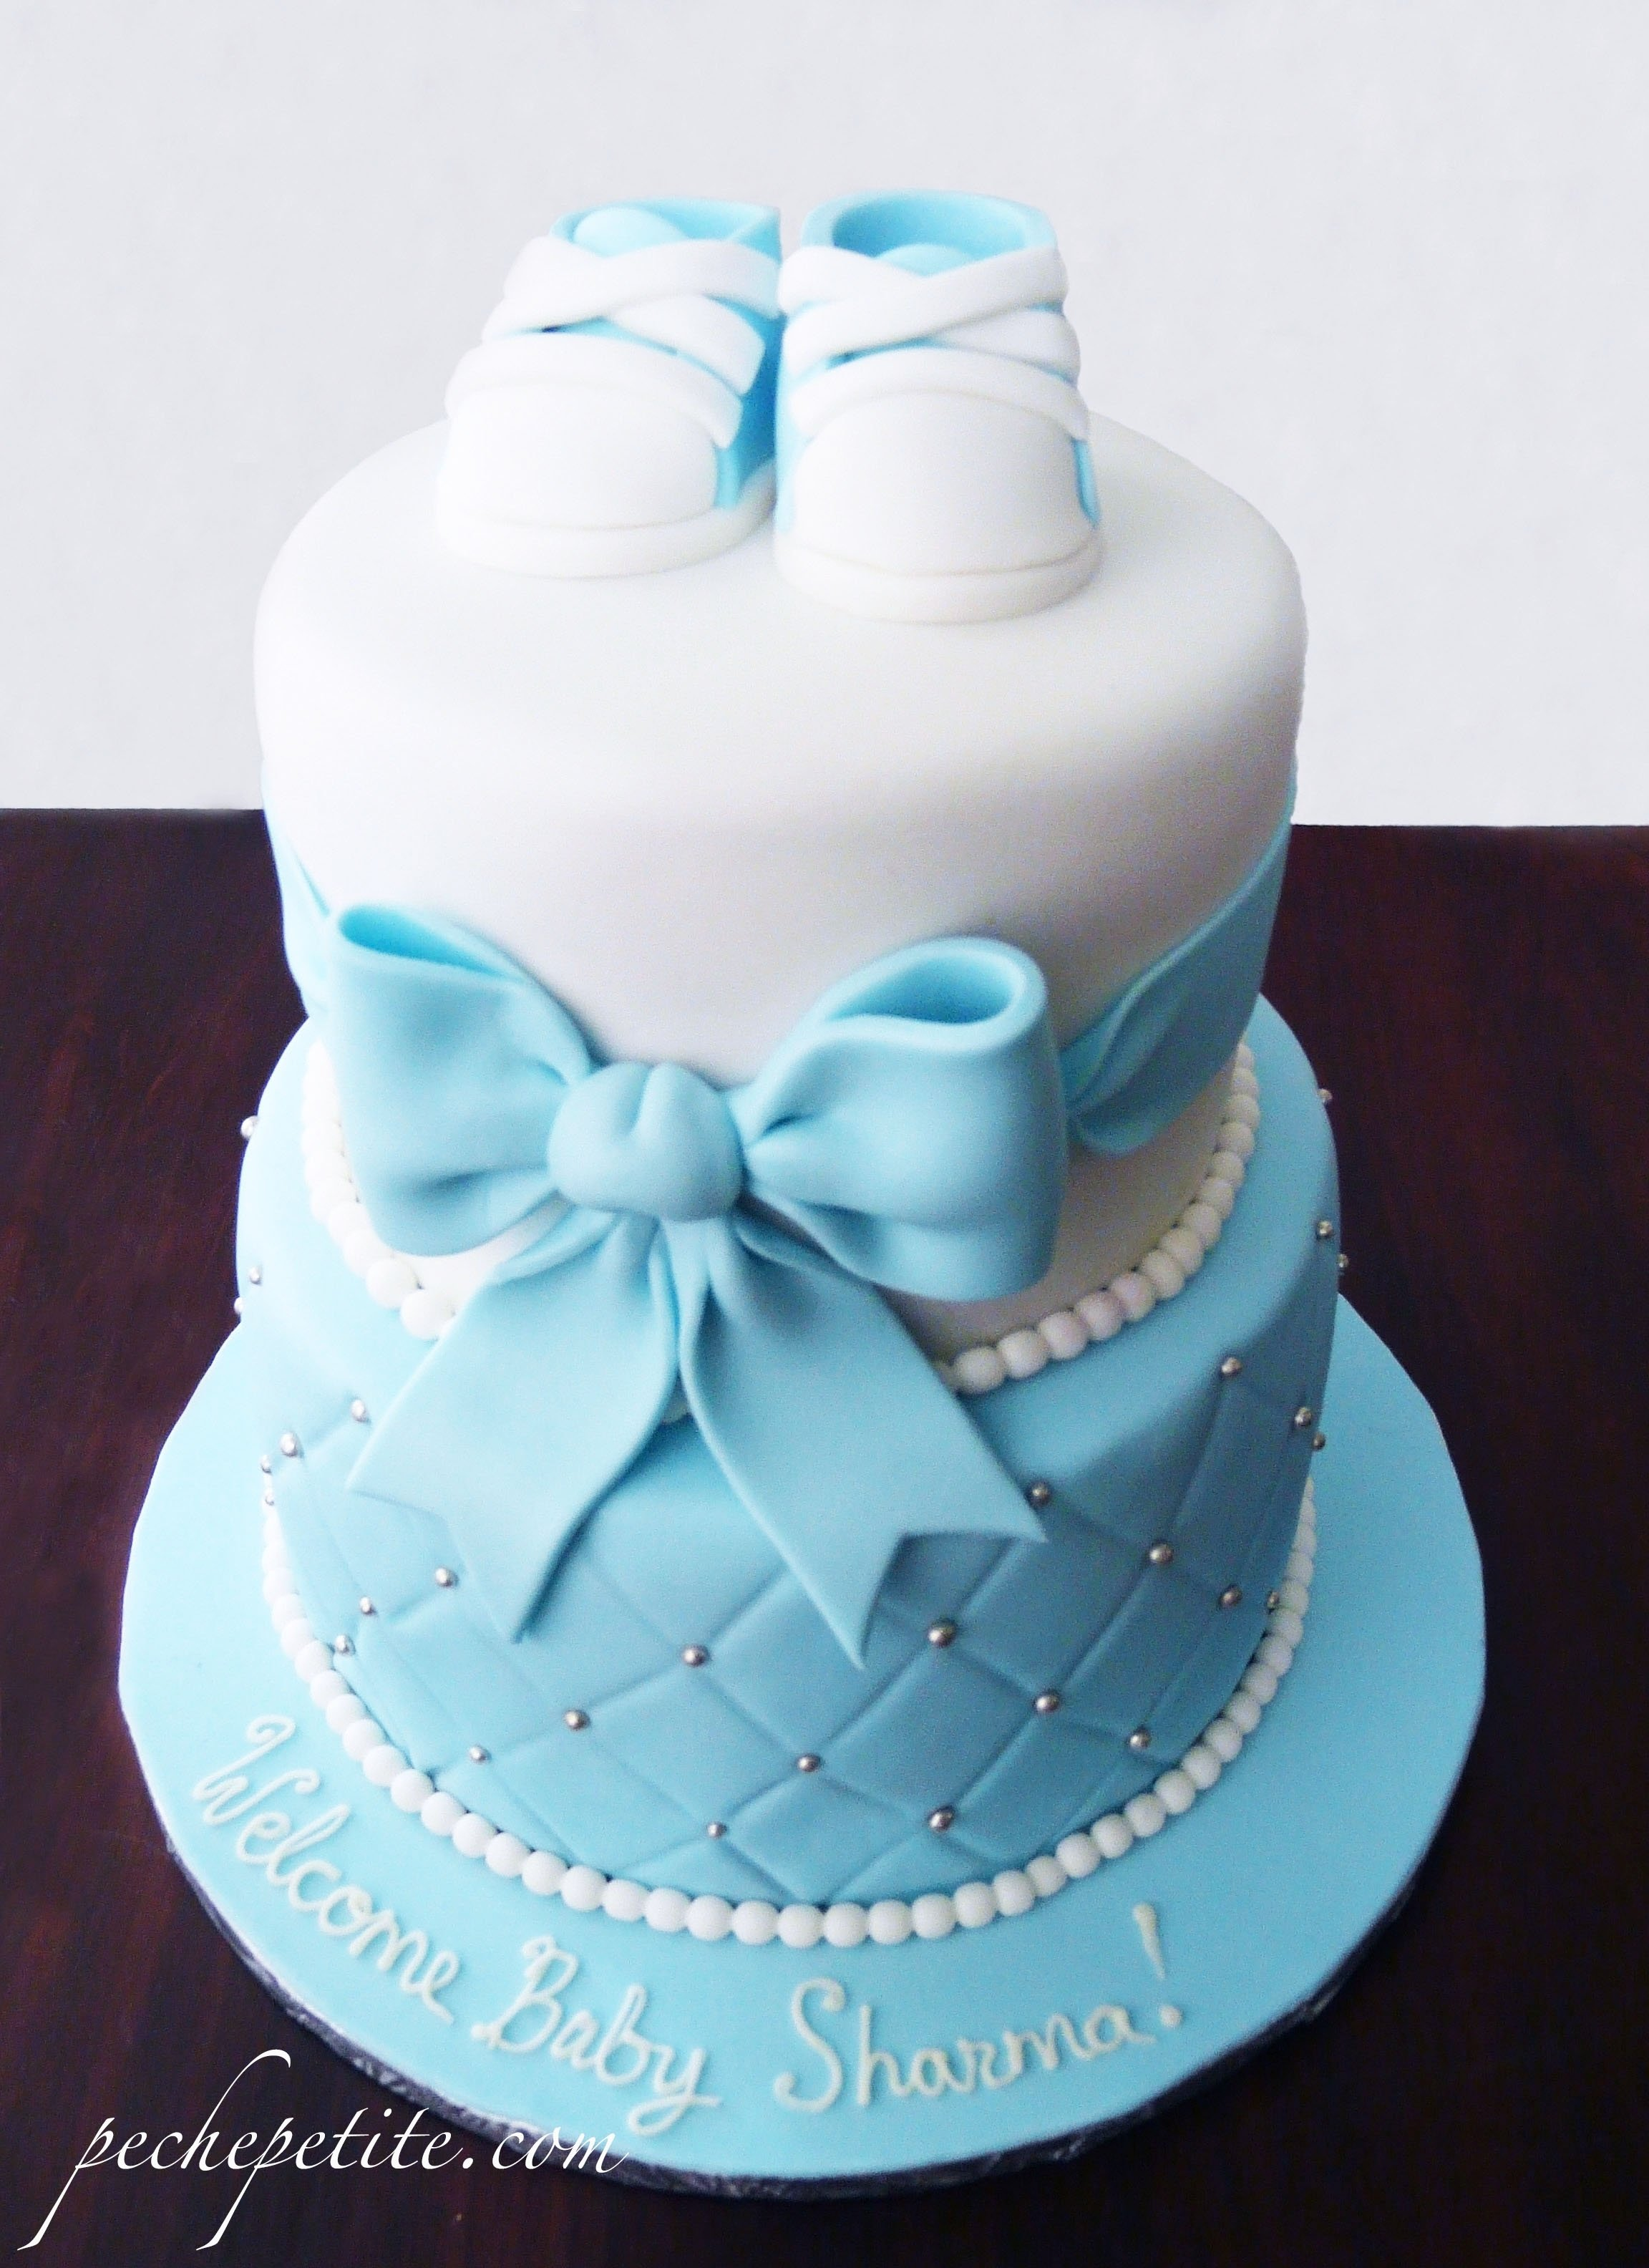 10 Great Baby Shower Cake Ideas For Boy ideas baby shower cake boy cakes peche petite diaper for remarkable 1 2020